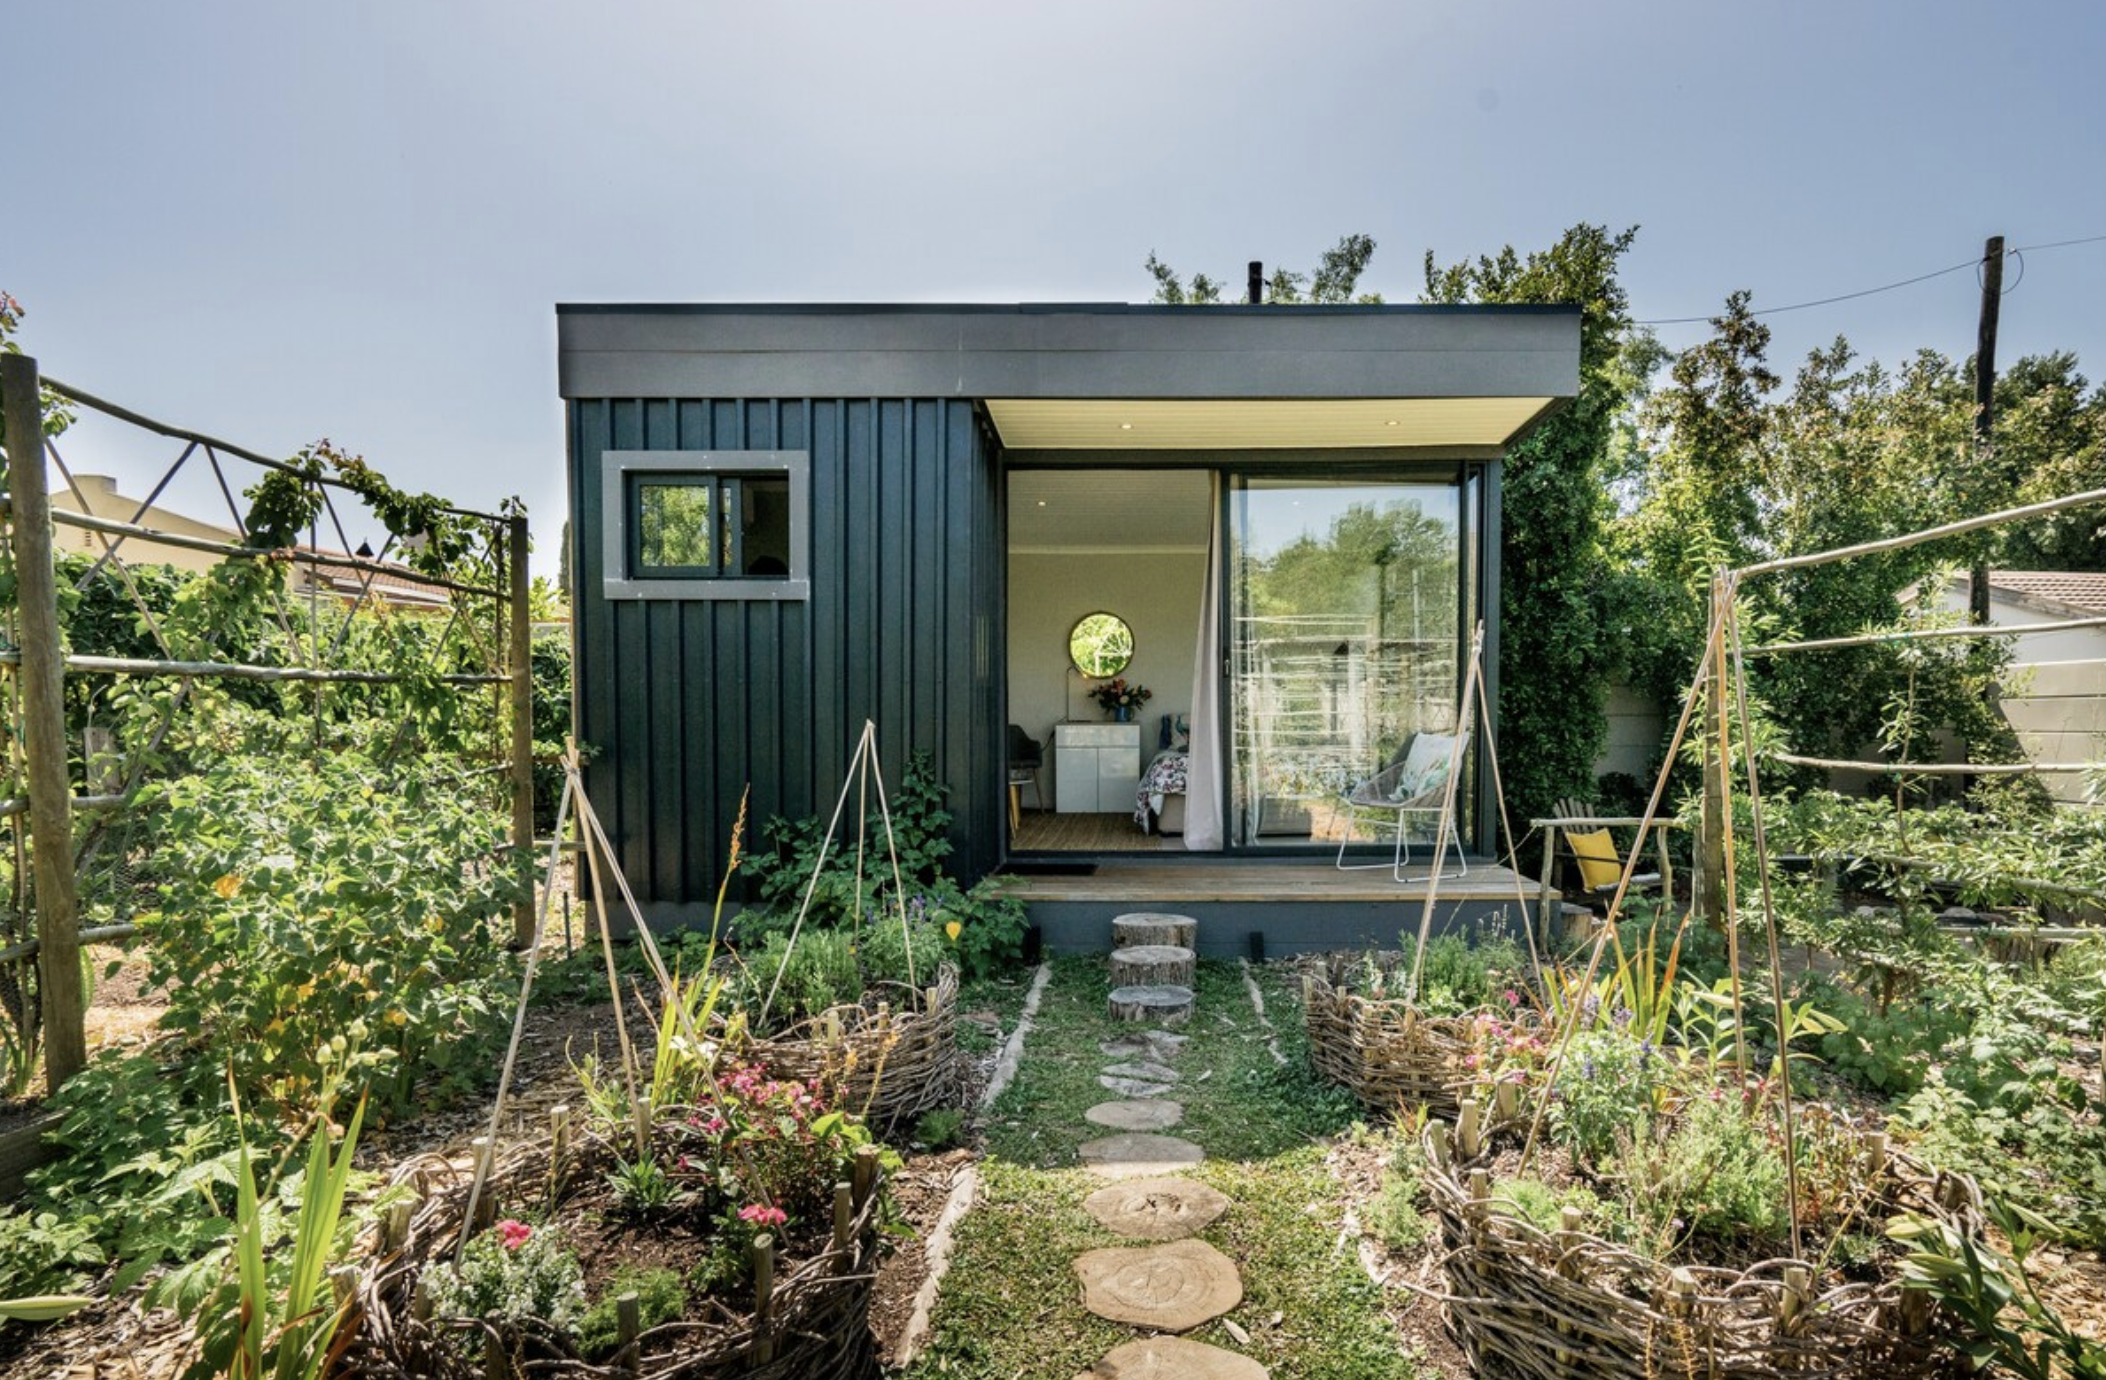 A rectangular metal house in the middle of a garden, accessible by cute stone path